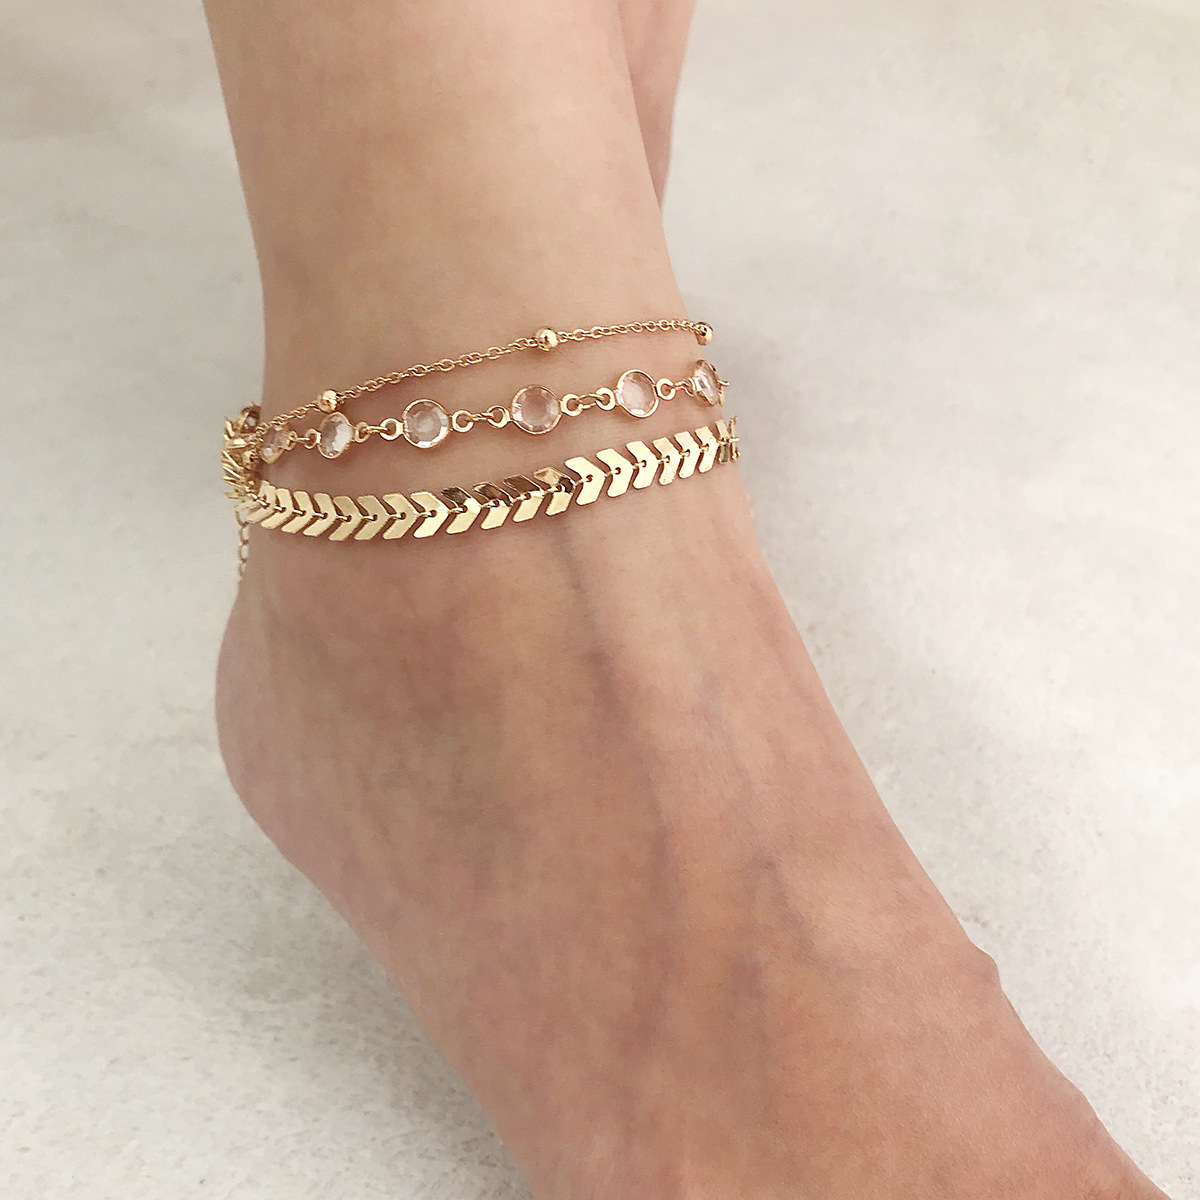 Stylish Simple Multi-layered Crystal Anklets